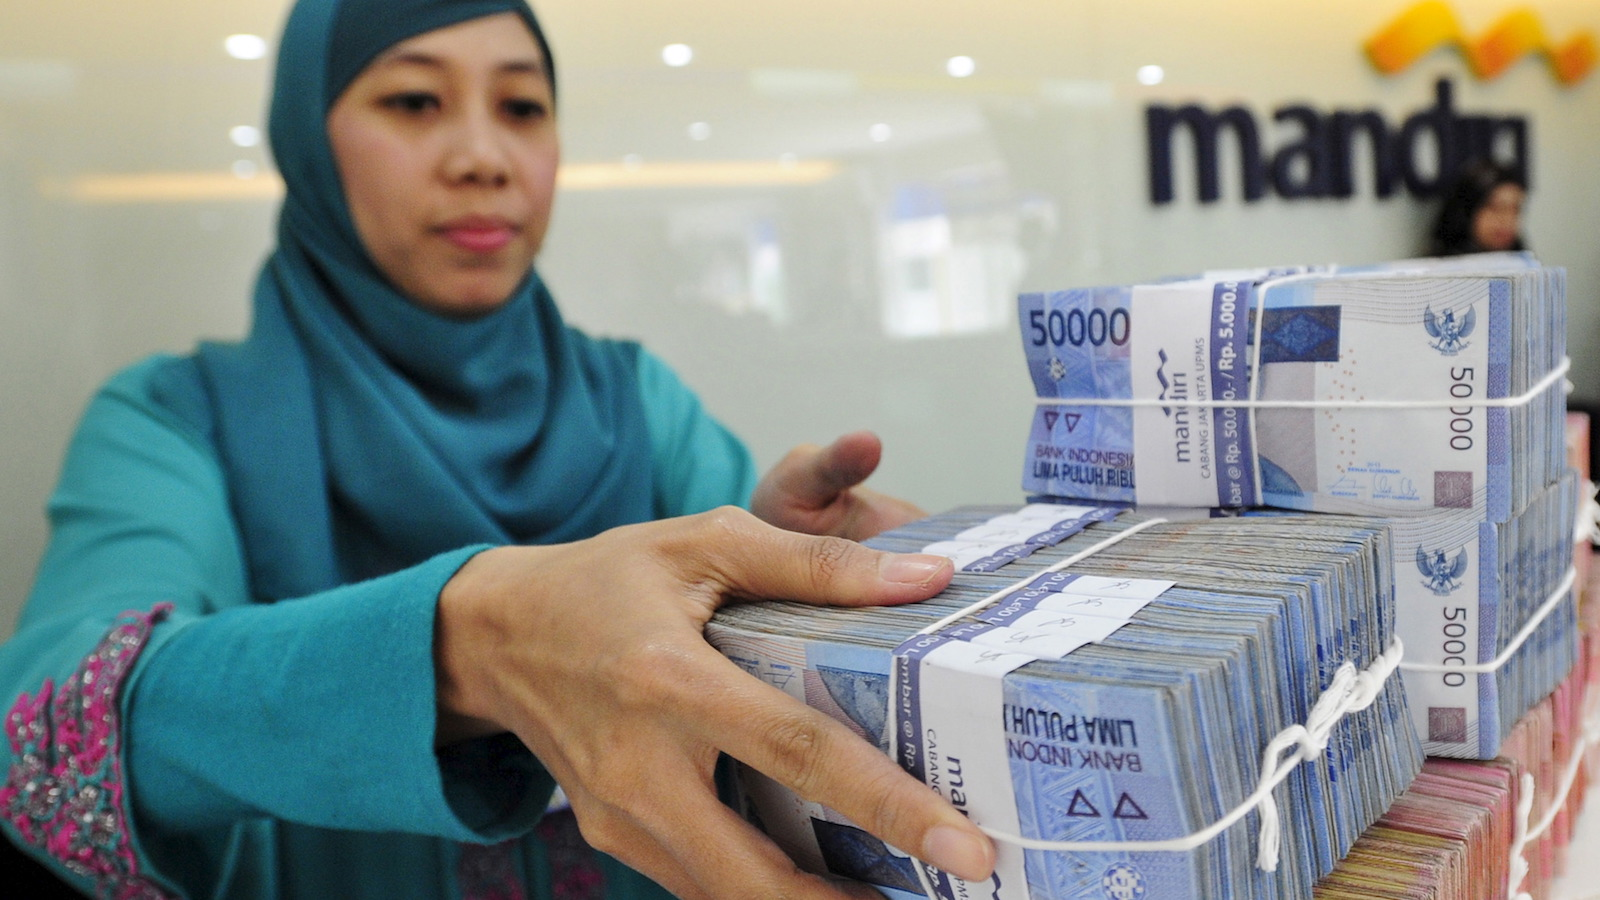 A teller at a Bank Mandiri branch handles Indonesian Rupiah currency during a transaction in Jakarta July 20, 2015 in this photo taken by Antara Foto.  The Indonesian rupiah hit a fresh 17-year low on July 23, 2015, as solid U.S. housing data added to expectations the Federal Reserve with hike interest rates as soon as September. Picture taken July 20, 2015. REUTERS/Wahyu Putro A/Antara Foto ATTENTION EDITORS - THIS IMAGE HAS BEEN SUPPLIED BY A THIRD PARTY. IT IS DISTRIBUTED, EXACTLY AS RECEIVED BY REUTERS, AS A SERVICE TO CLIENTS. FOR EDITORIAL USE ONLY. NOT FOR SALE FOR MARKETING OR ADVERTISING CAMPAIGNS MANDATORY CREDIT. INDONESIA OUT. NO COMMERCIAL OR EDITORIAL SALES IN INDONESIA. - RTX1LFNO